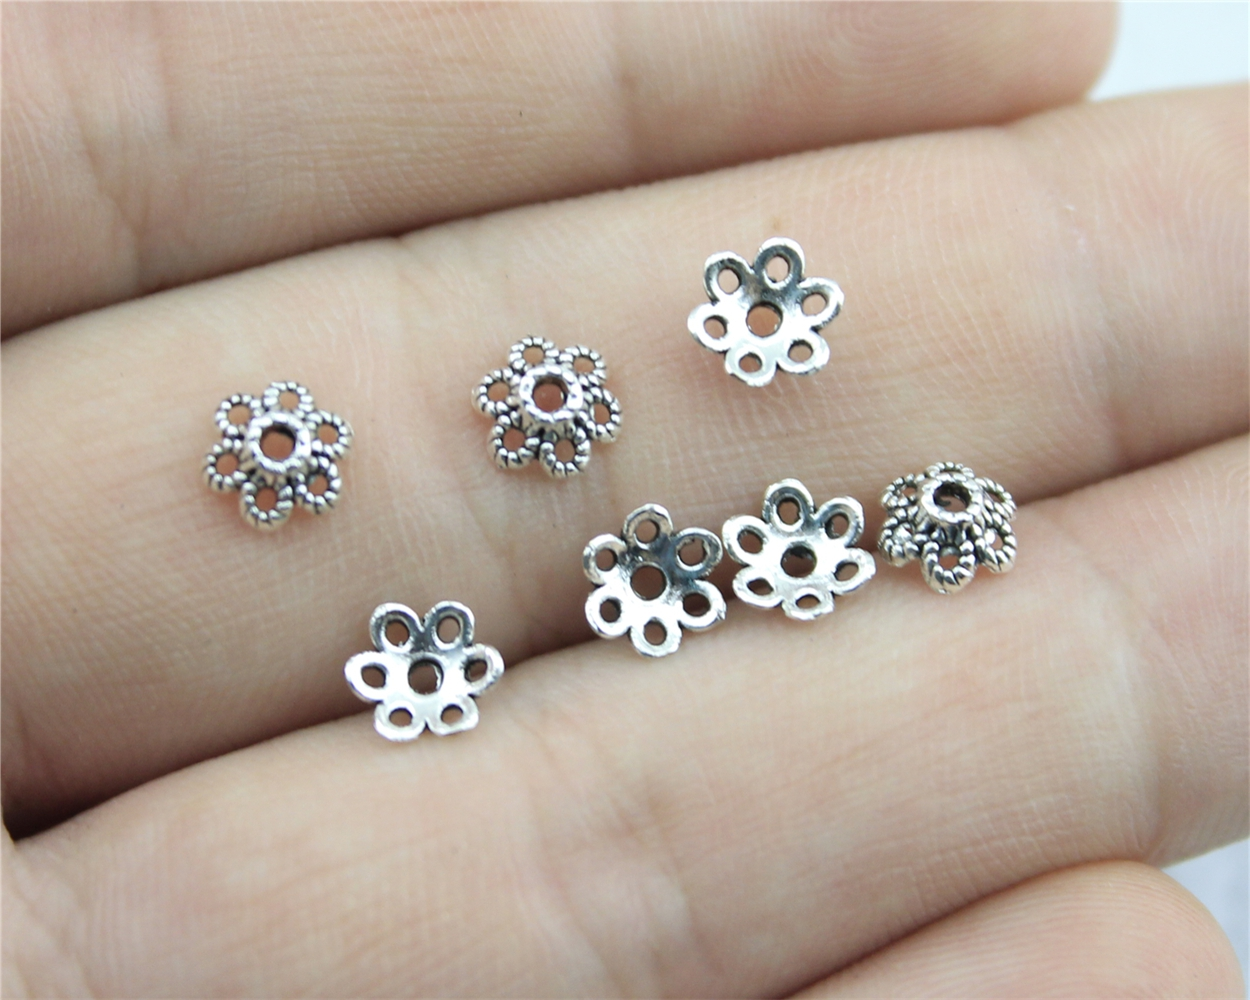 WYSIWYG 120pcs 6*6mm Antique Silver Color Receptacle Flower Torus DIY Spaced Apart Jewelry Finding Accessories